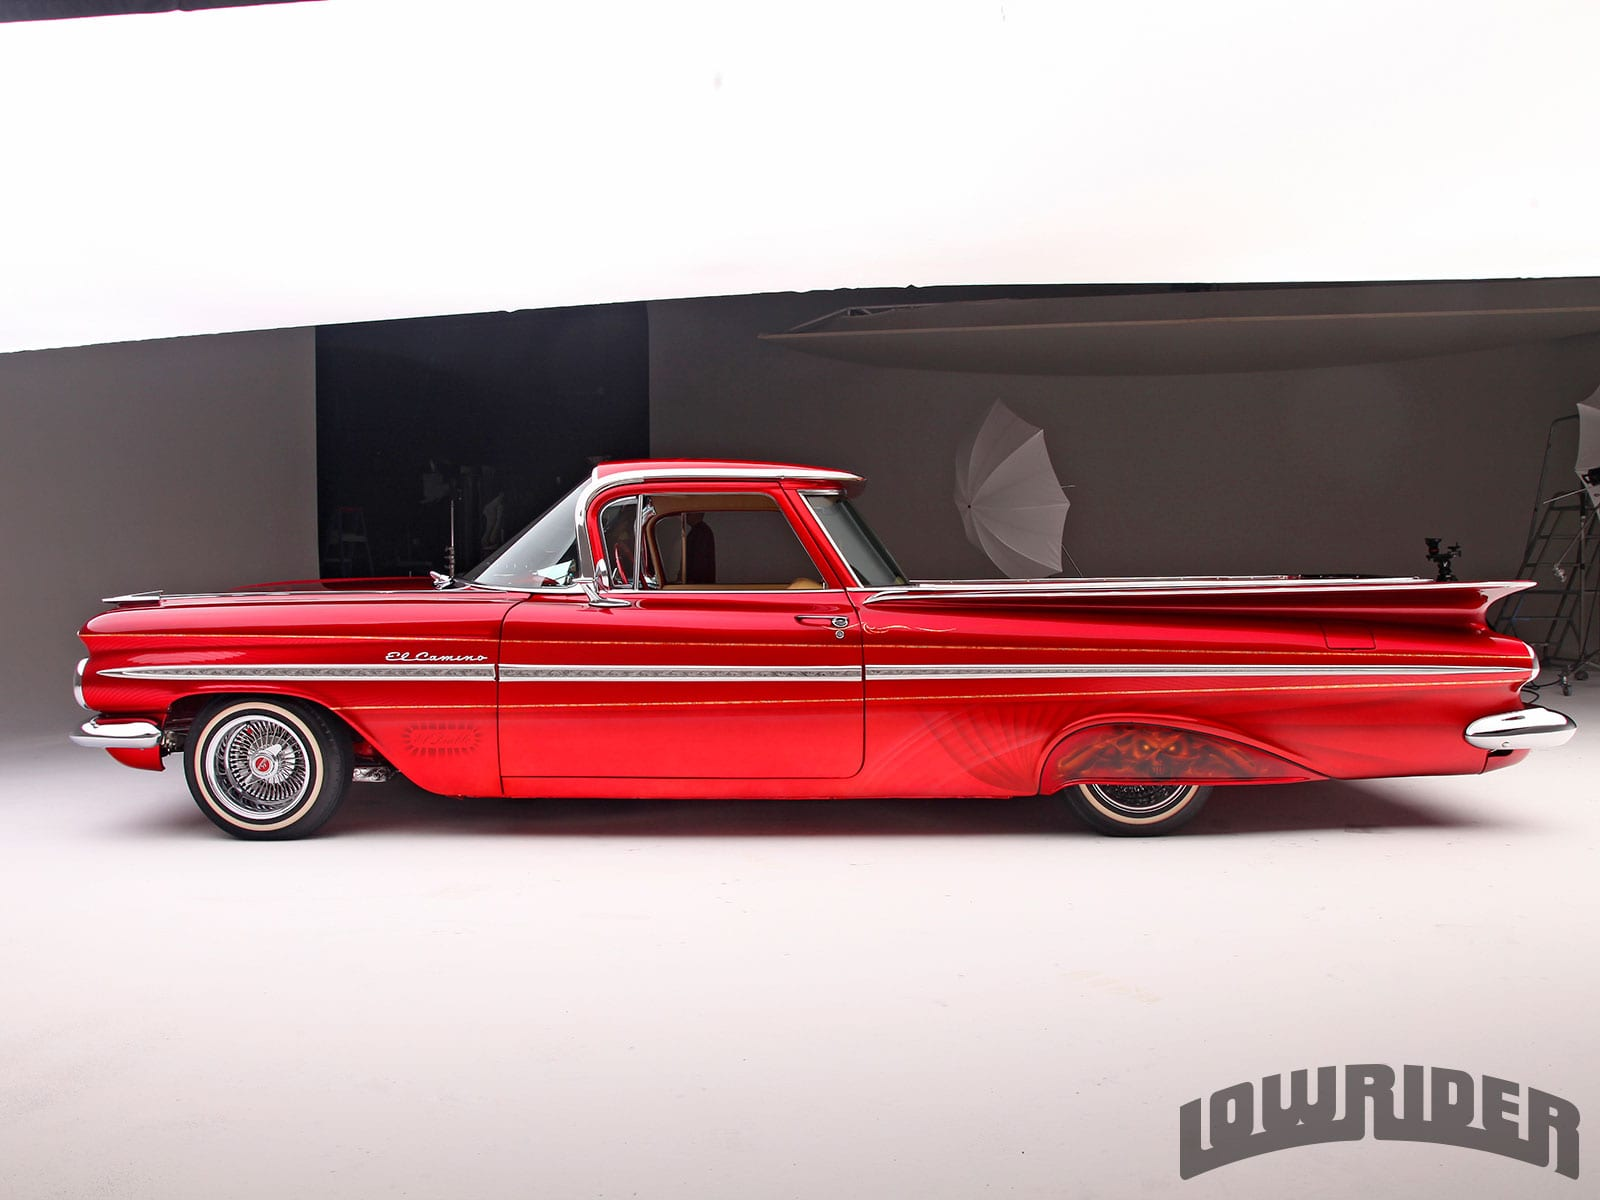 1959 Chevrolet El Camino widescreen wallpapers